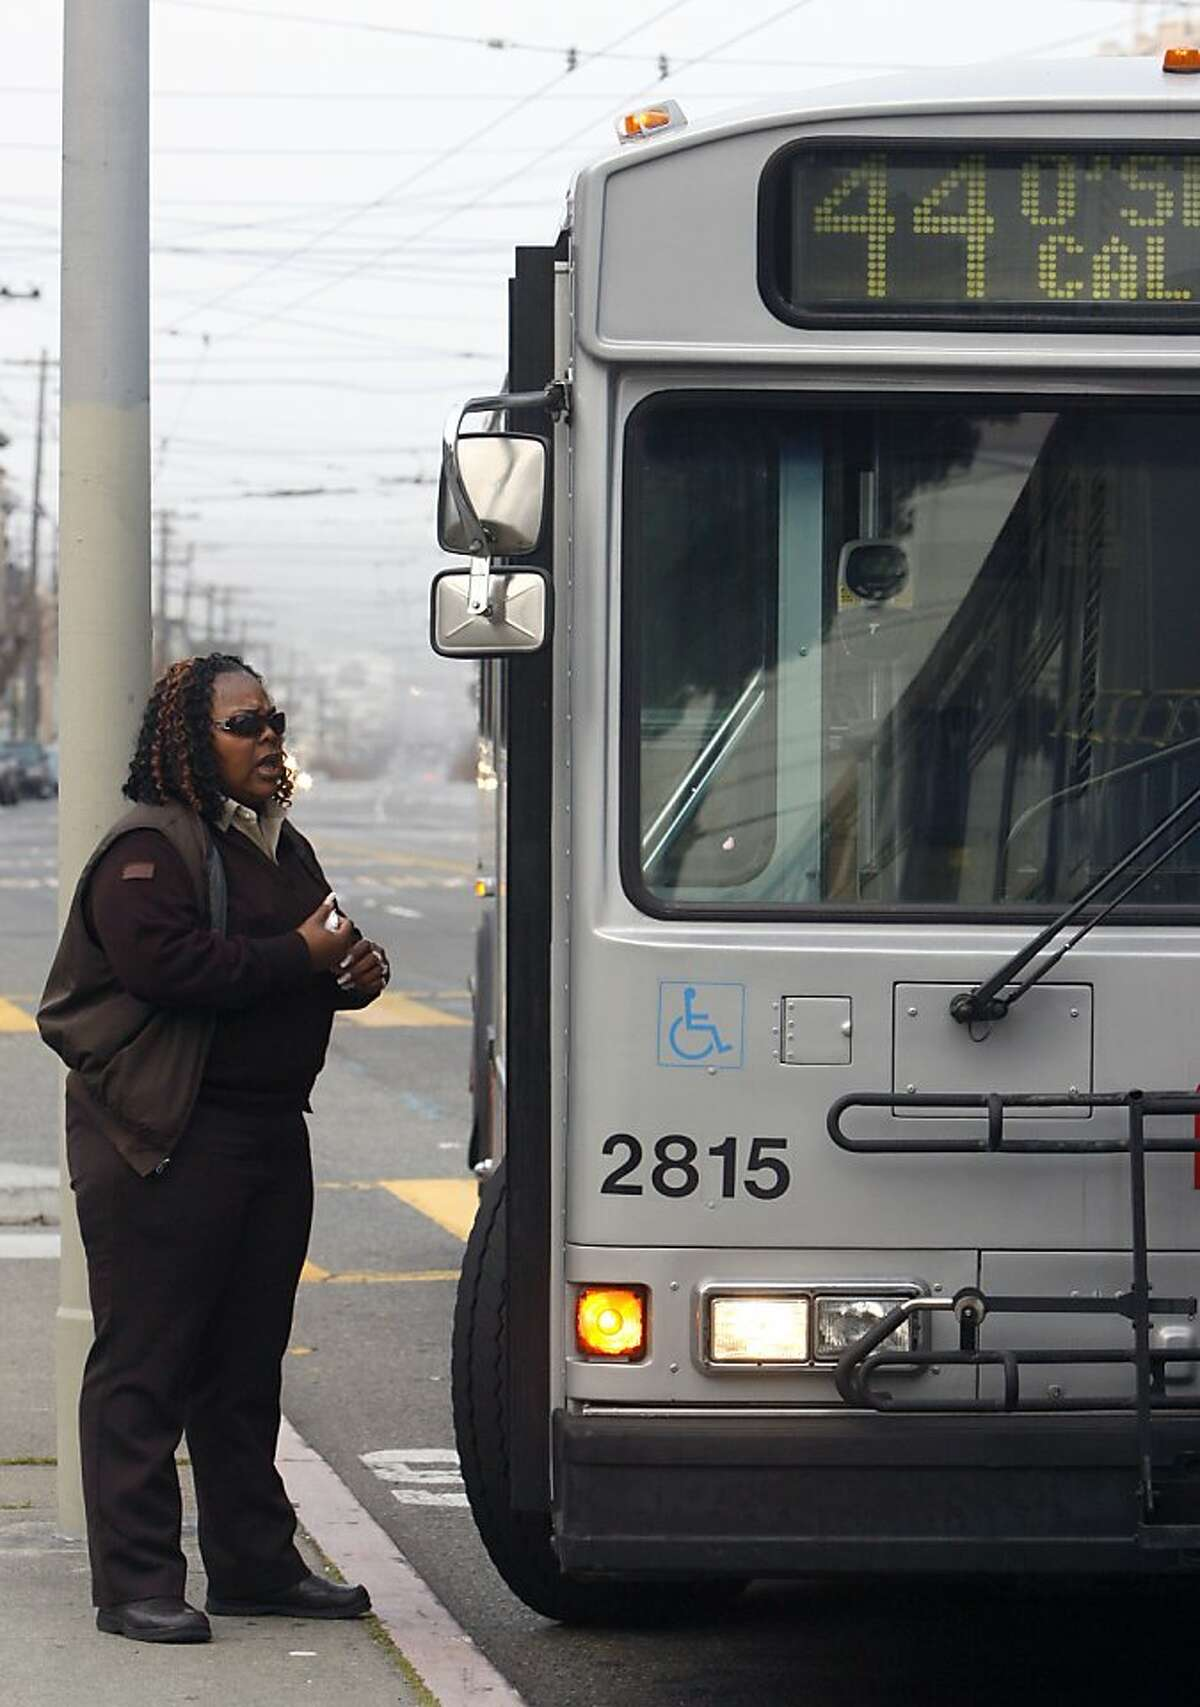 Rochelle Fuller talks with the driver of another 44-O'Shaughnessy Muni bus before making the inbound trip from the Richmond district in San Francisco, Calif. on Friday, Feb. 15, 2008. Photo by Paul Chinn/San Francisco Chronicle